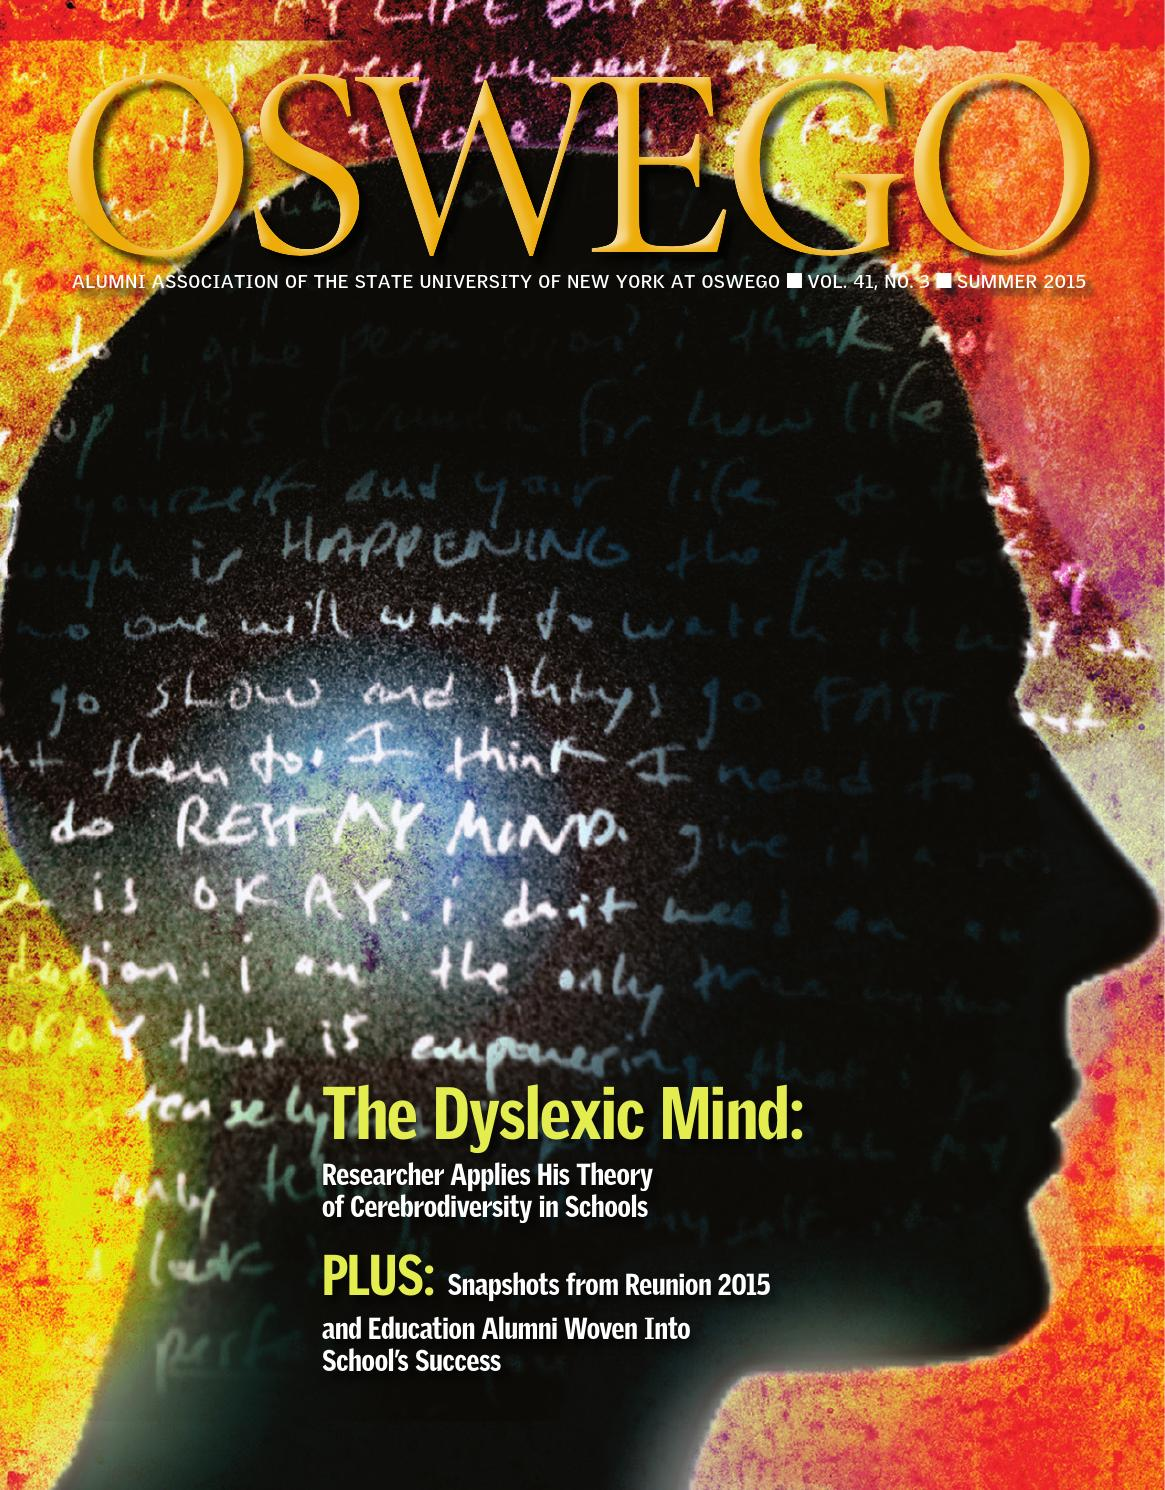 oswego alumni magazine summer by oswego alumni association oswego alumni magazine summer 2015 by oswego alumni association issuu